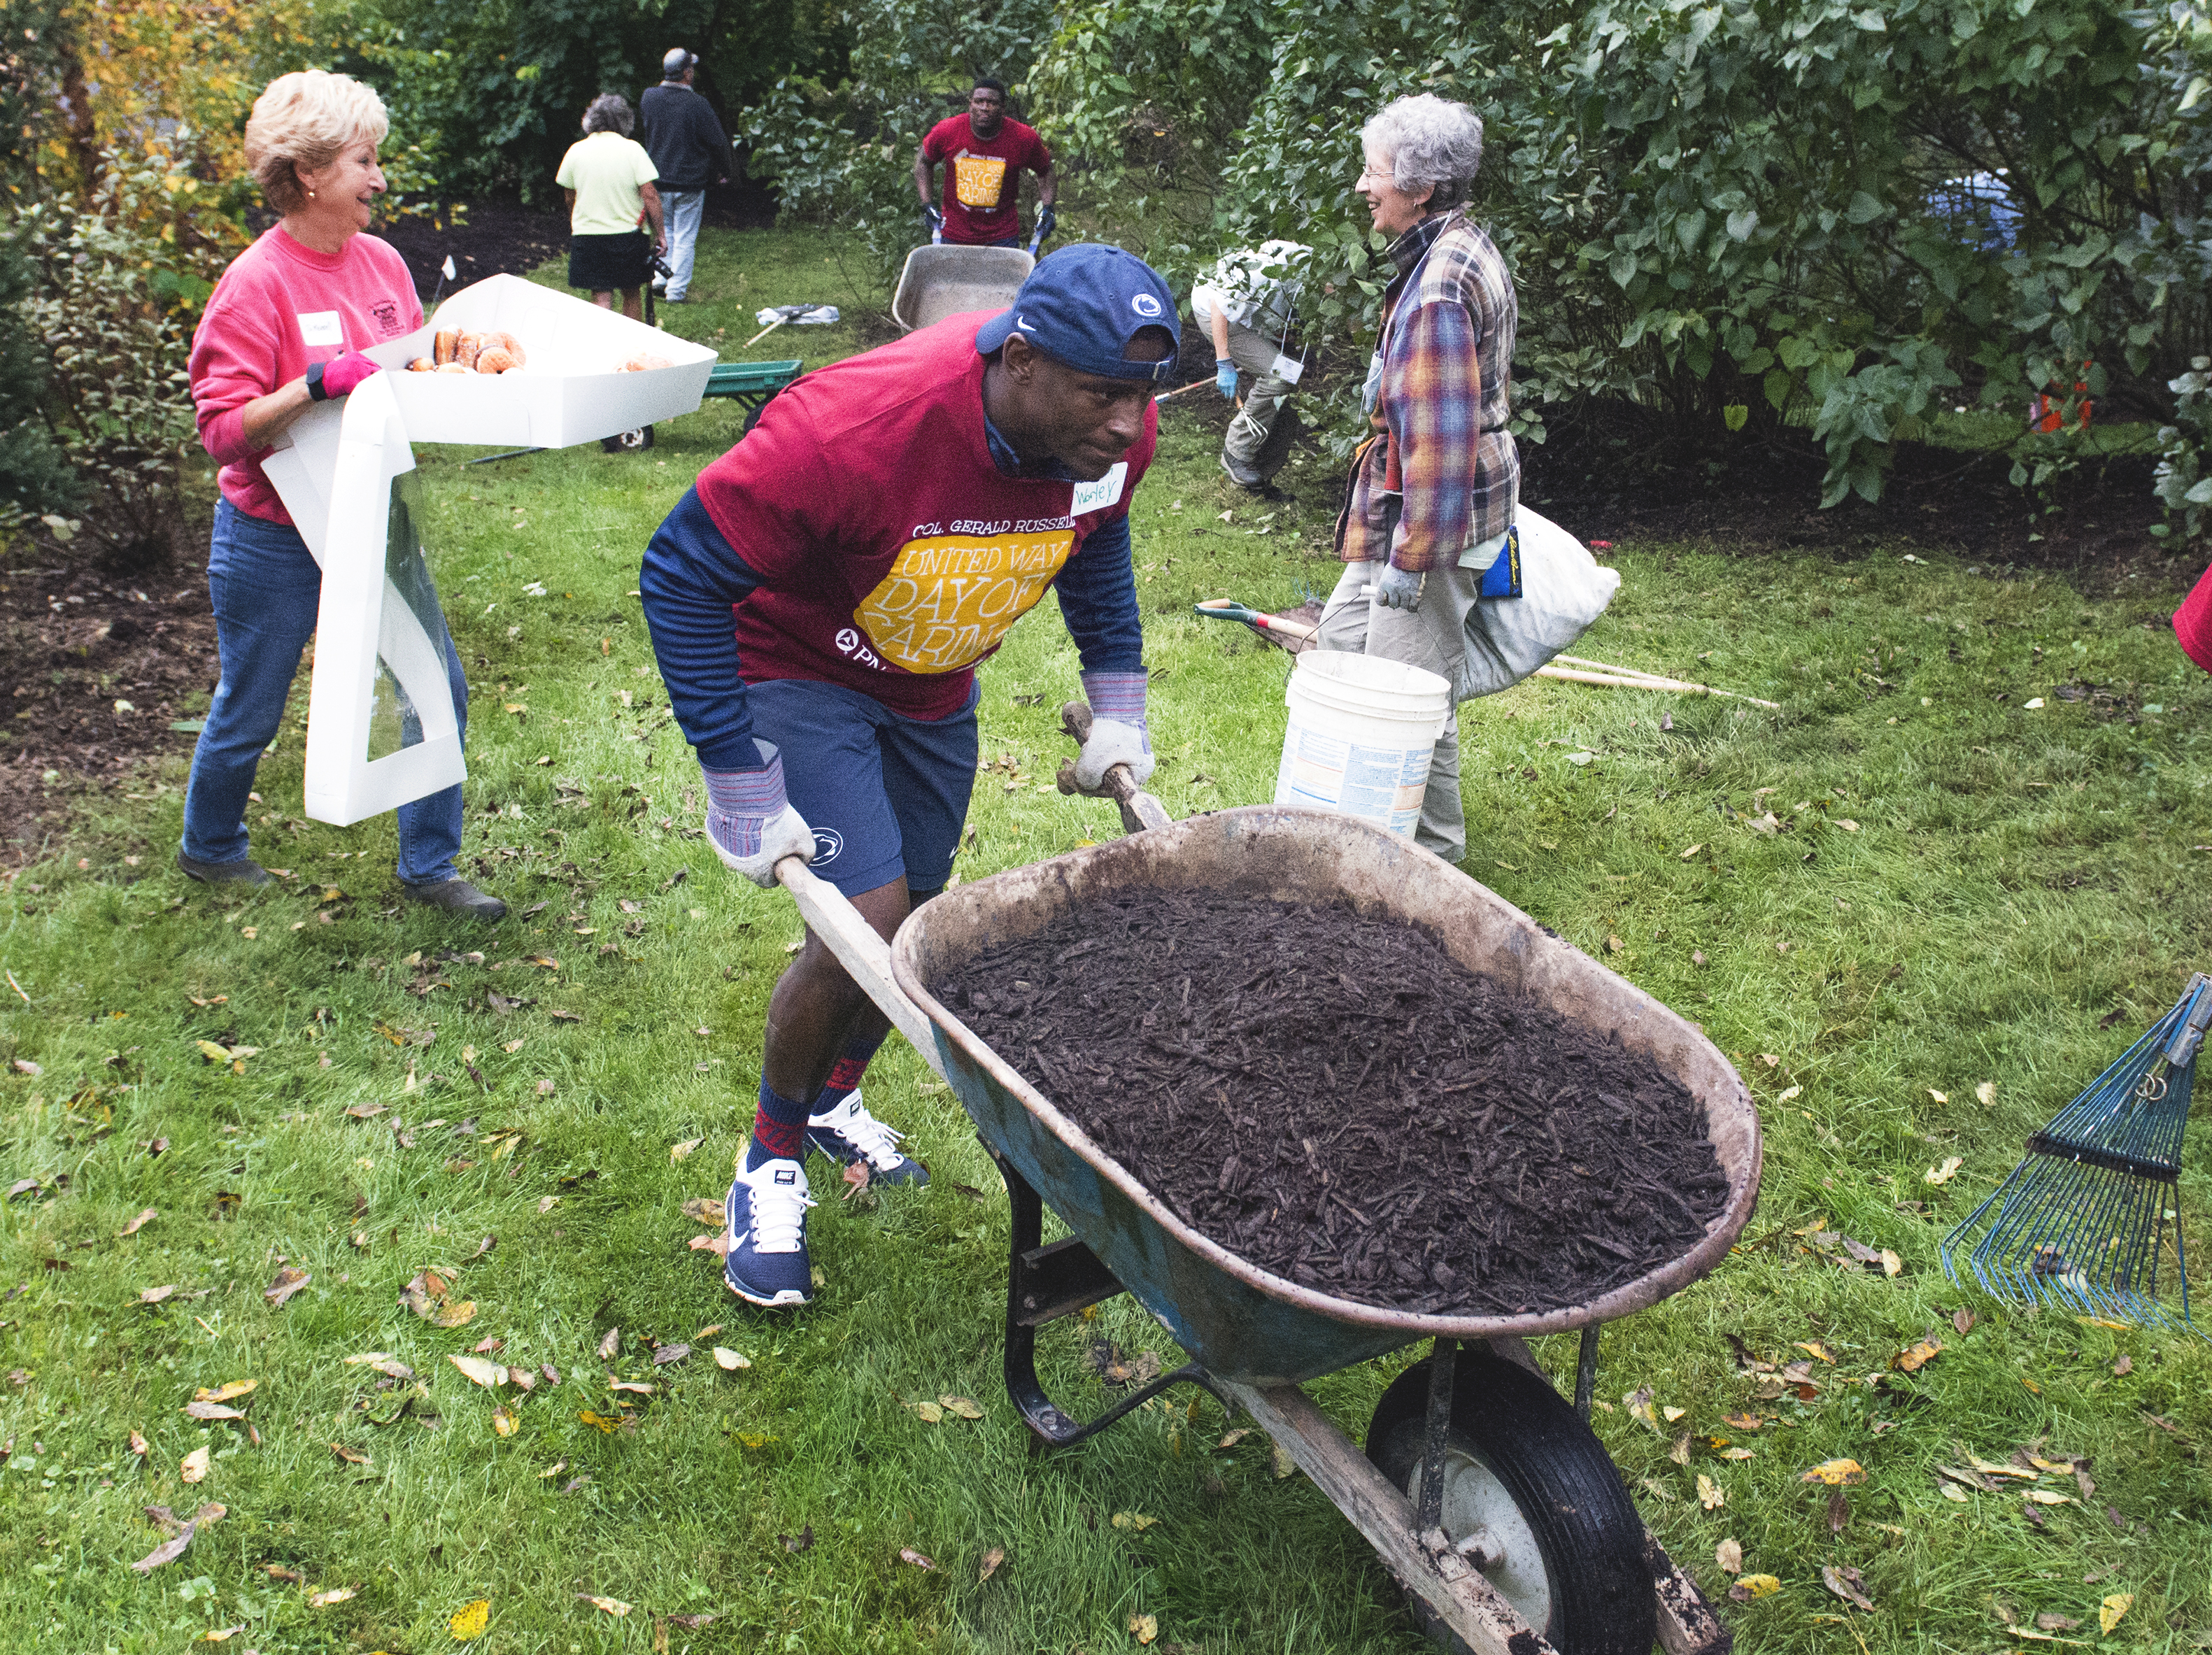 Penn State football player pushes wheelbarrow at PNC Day of Caring